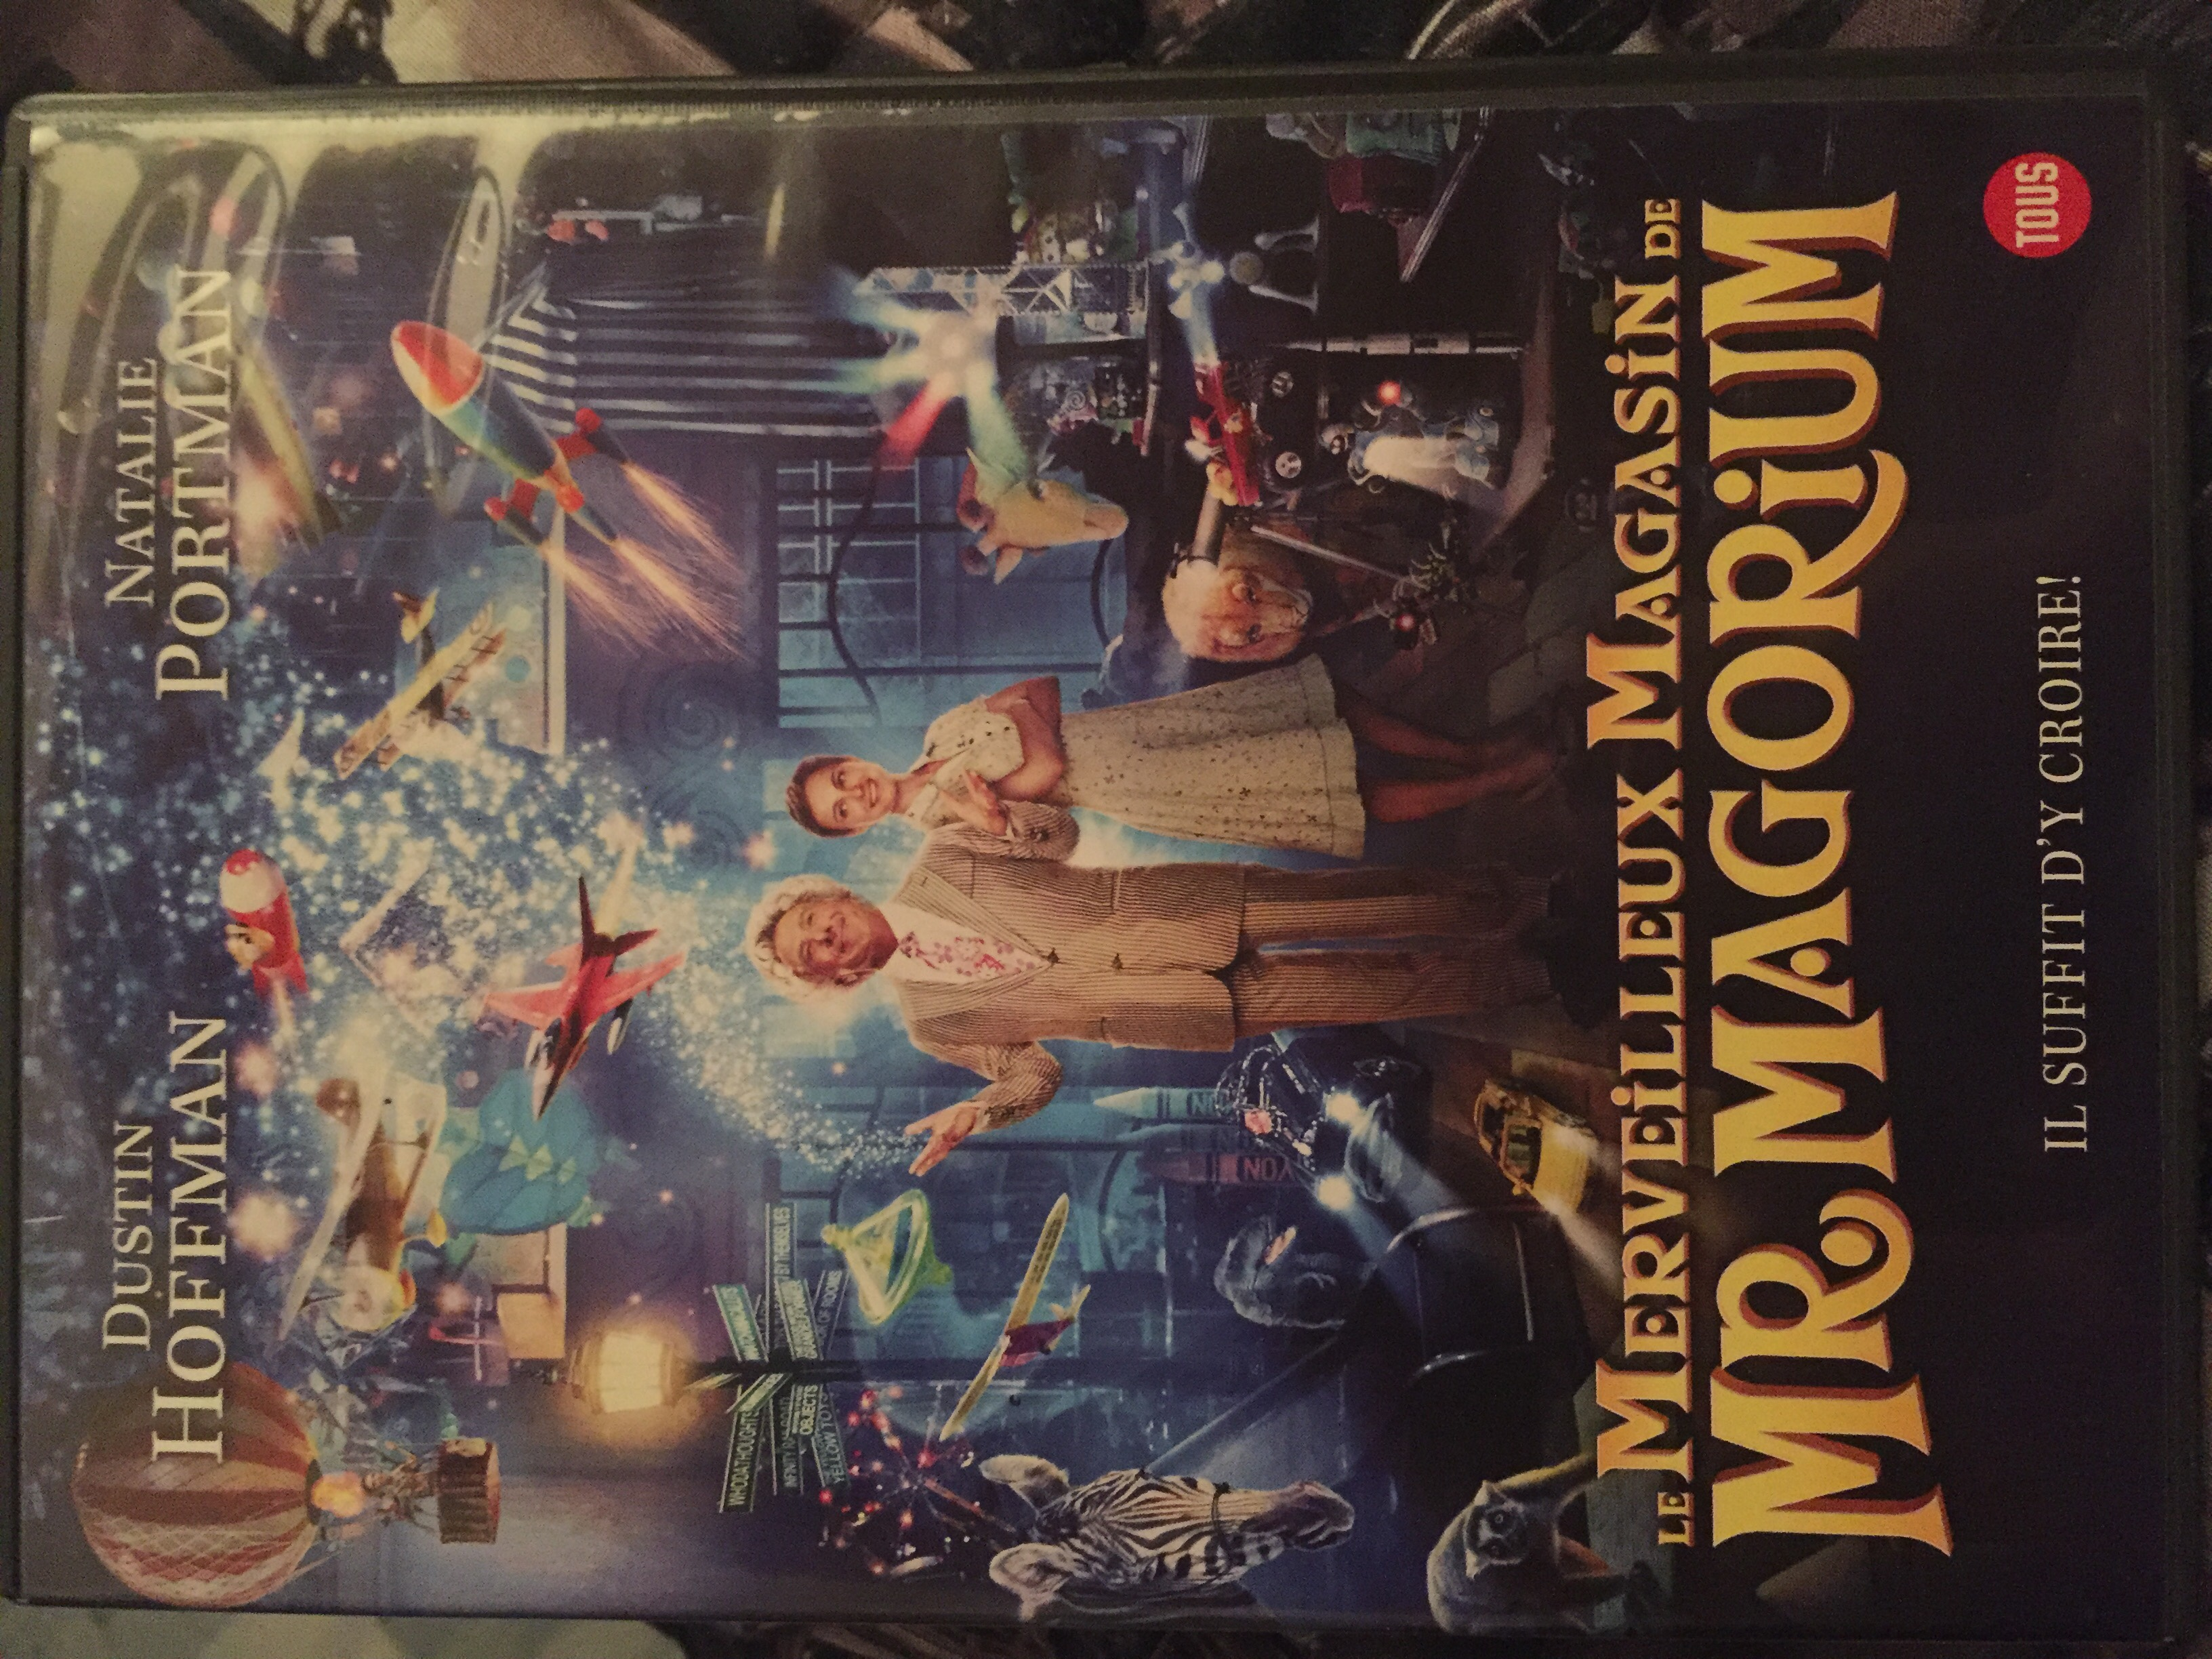 DVD Le Merveilleux Magasin de Mr. MAGORIUM DVD et blu-ray